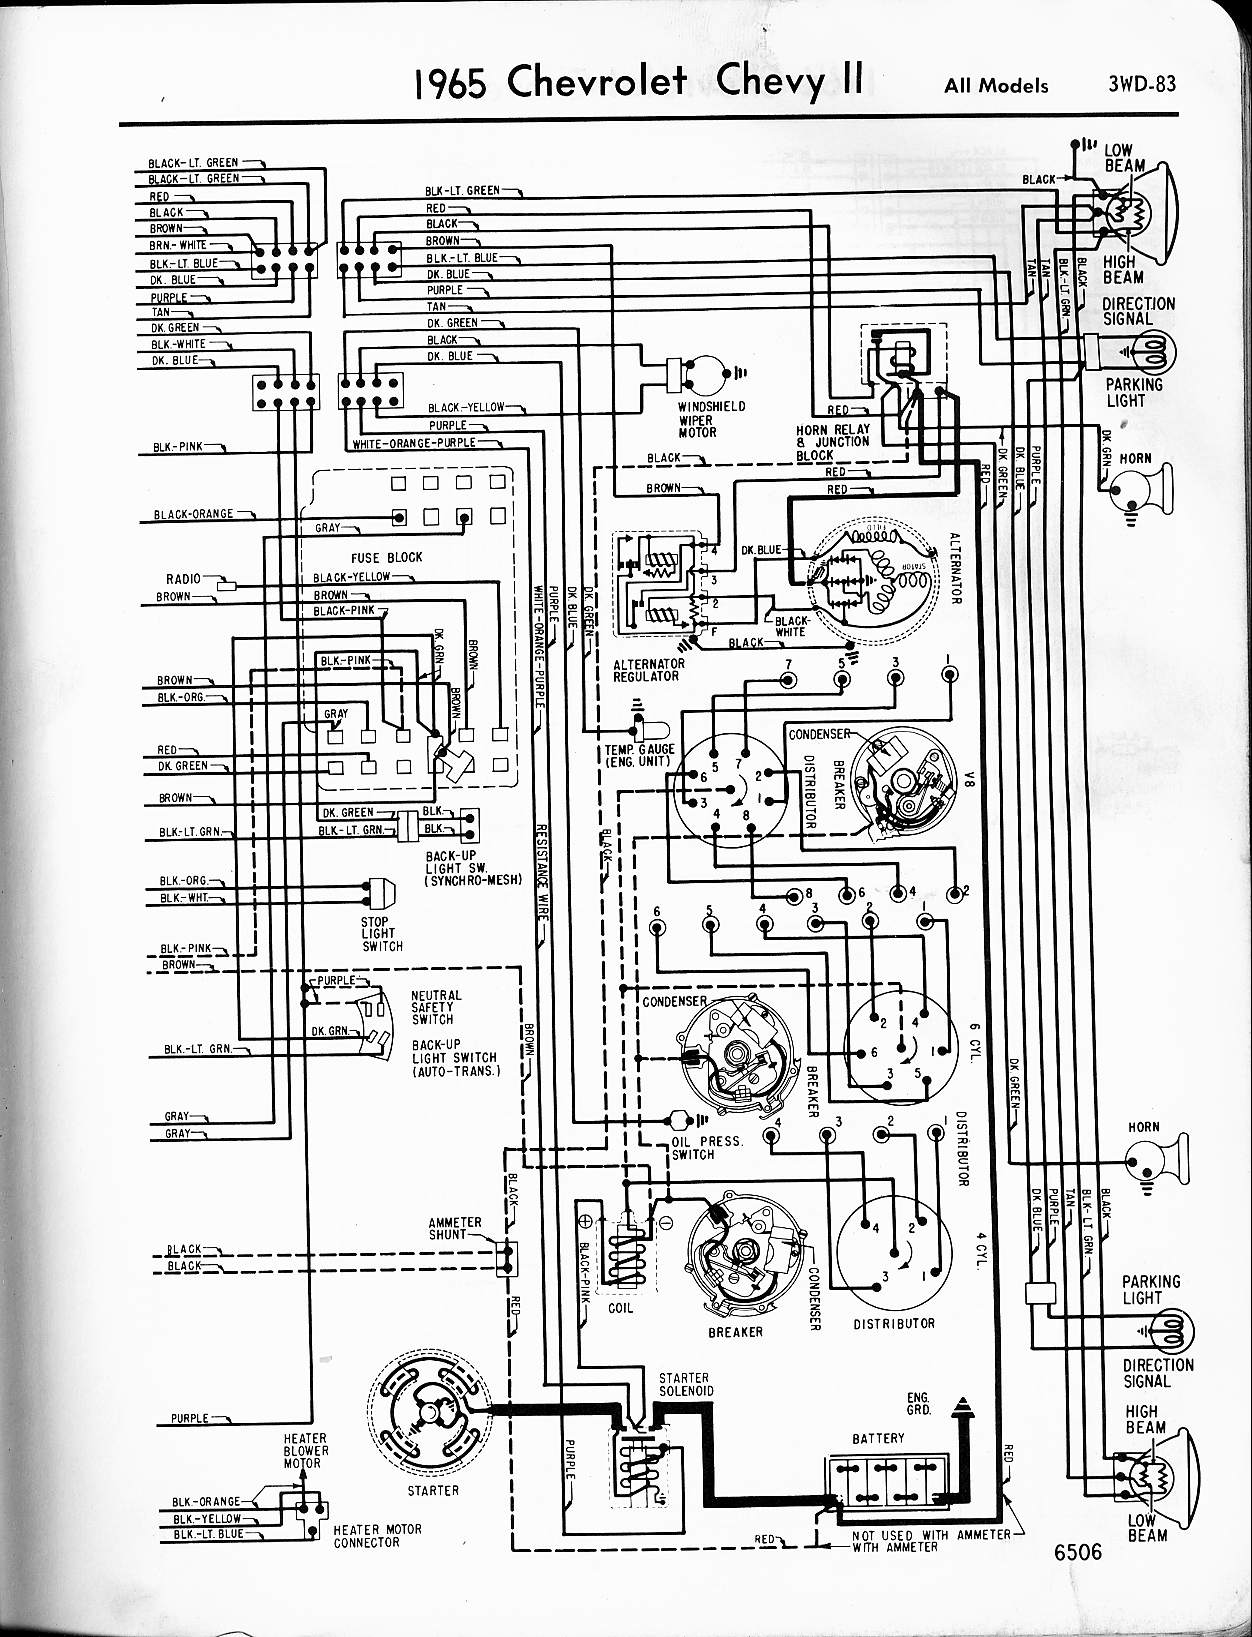 MWireChev65_3WD 083 chevy diagrams  at soozxer.org